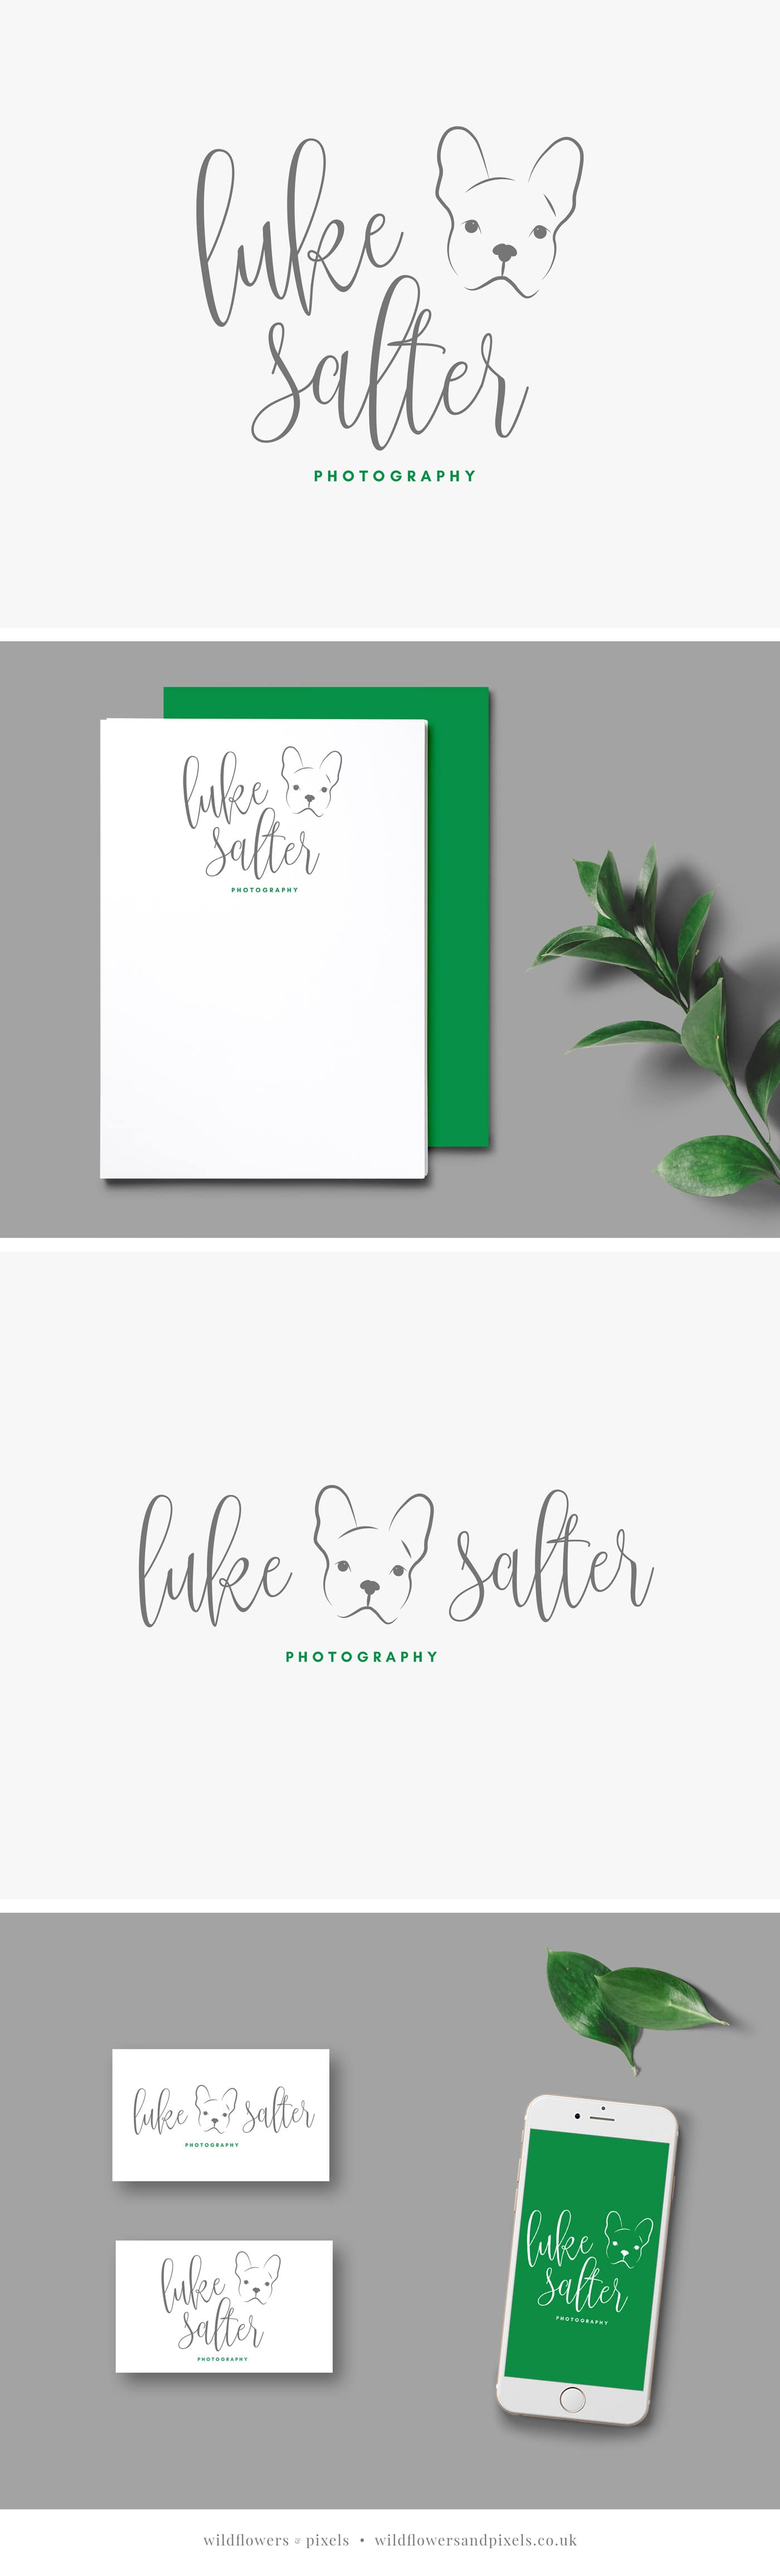 Branding for Luke Salter Photography by Wildflowers & Pixels. Pet photography logo design and branding.